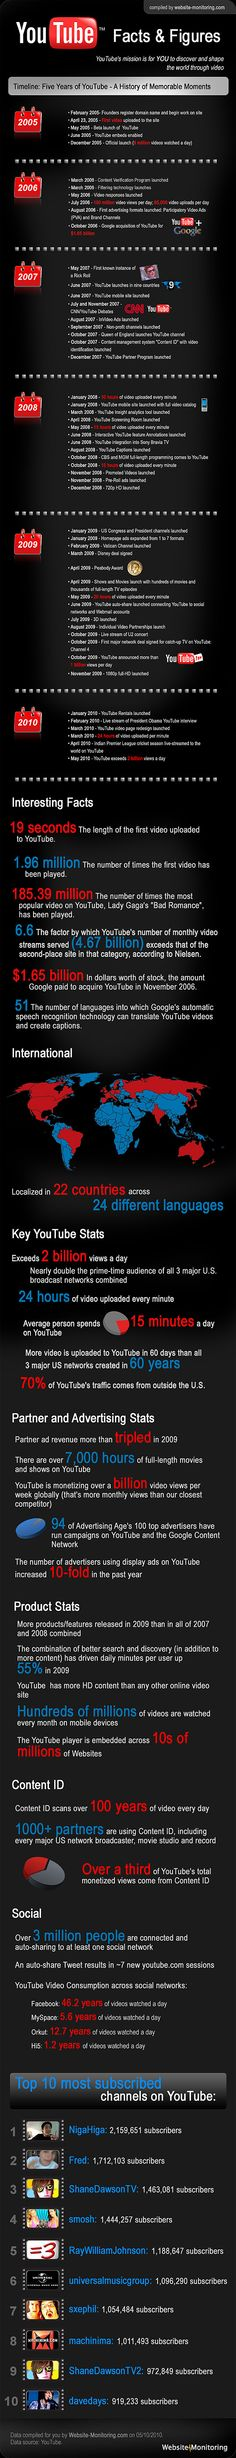 YouTube Statistics, Facts & Figures #infographic #YouTube